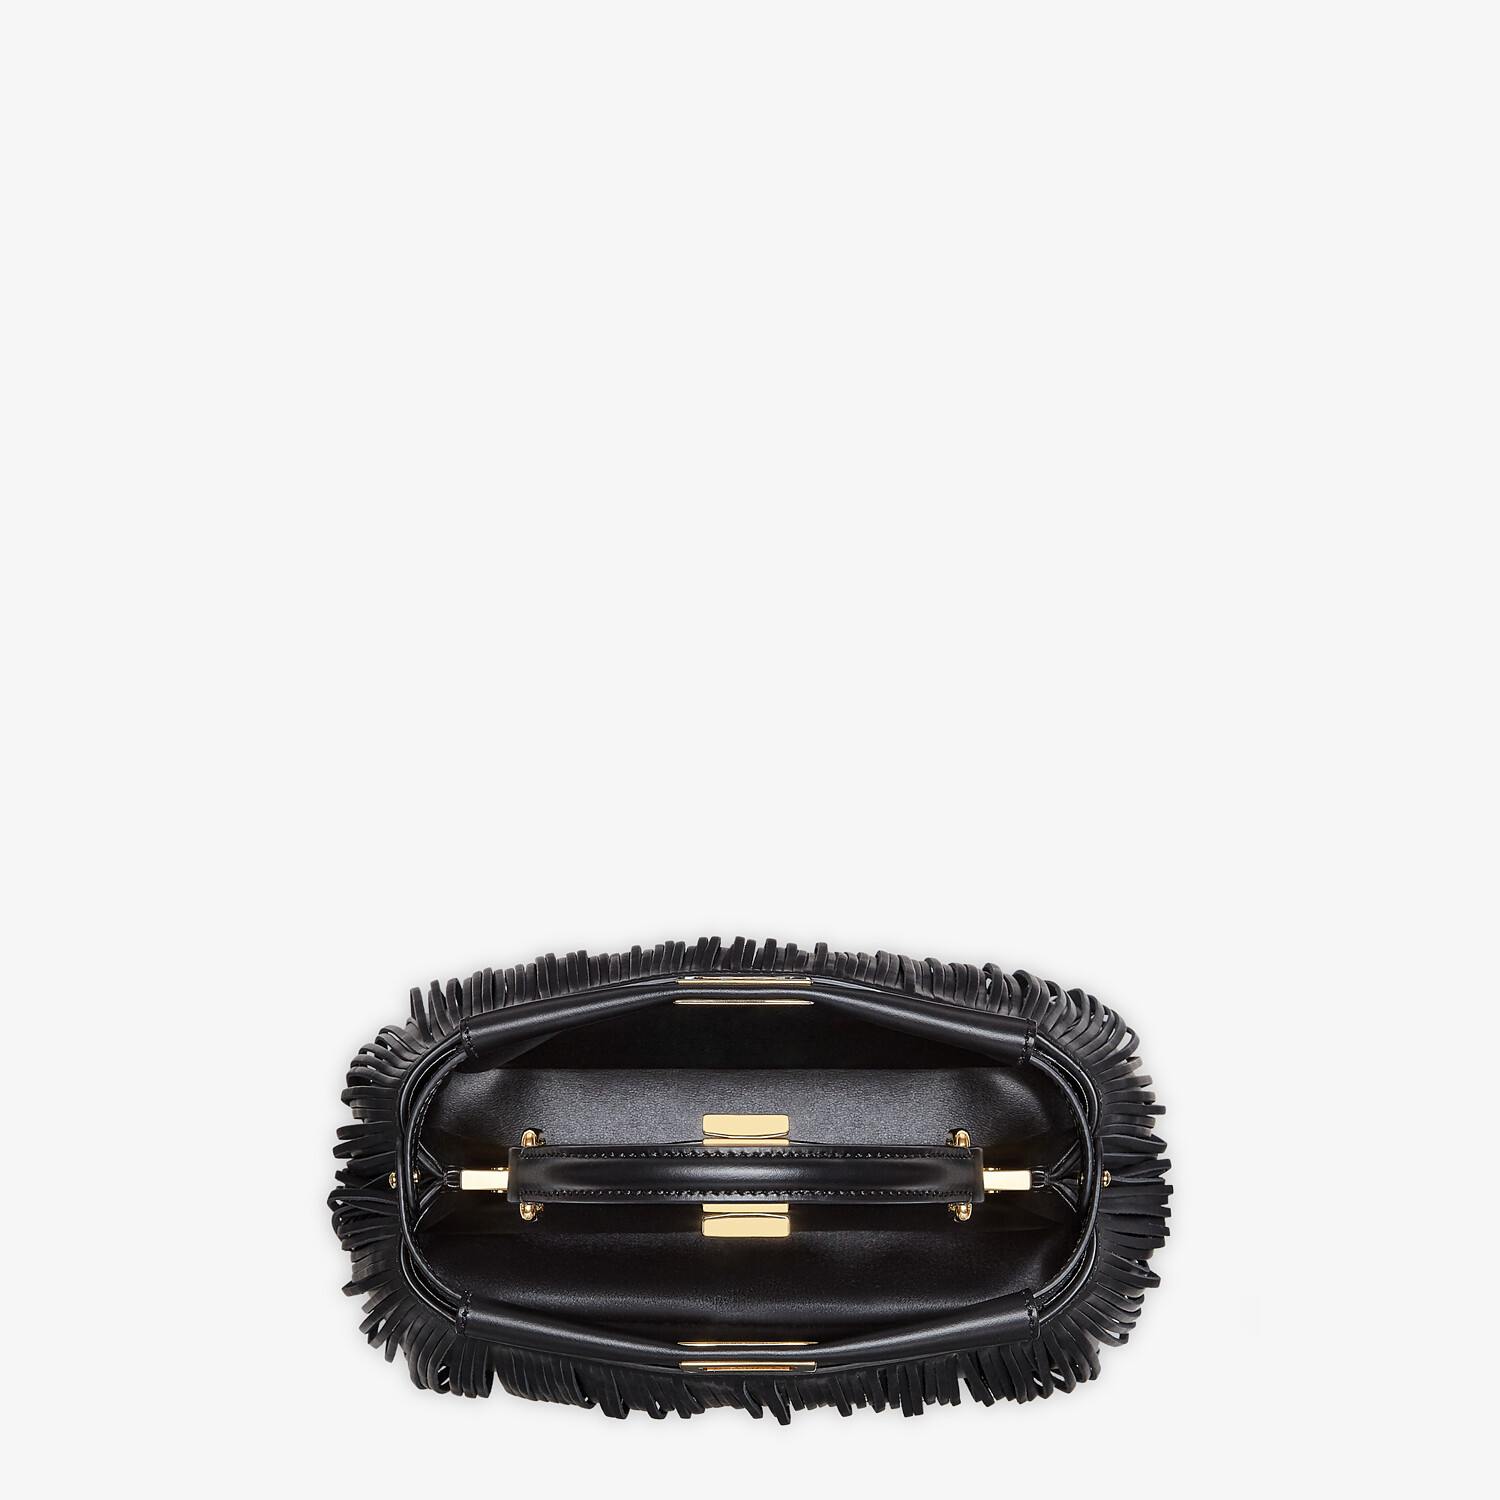 FENDI PEEKABOO ICONIC MINI - Black leather bag with fringes - view 5 detail